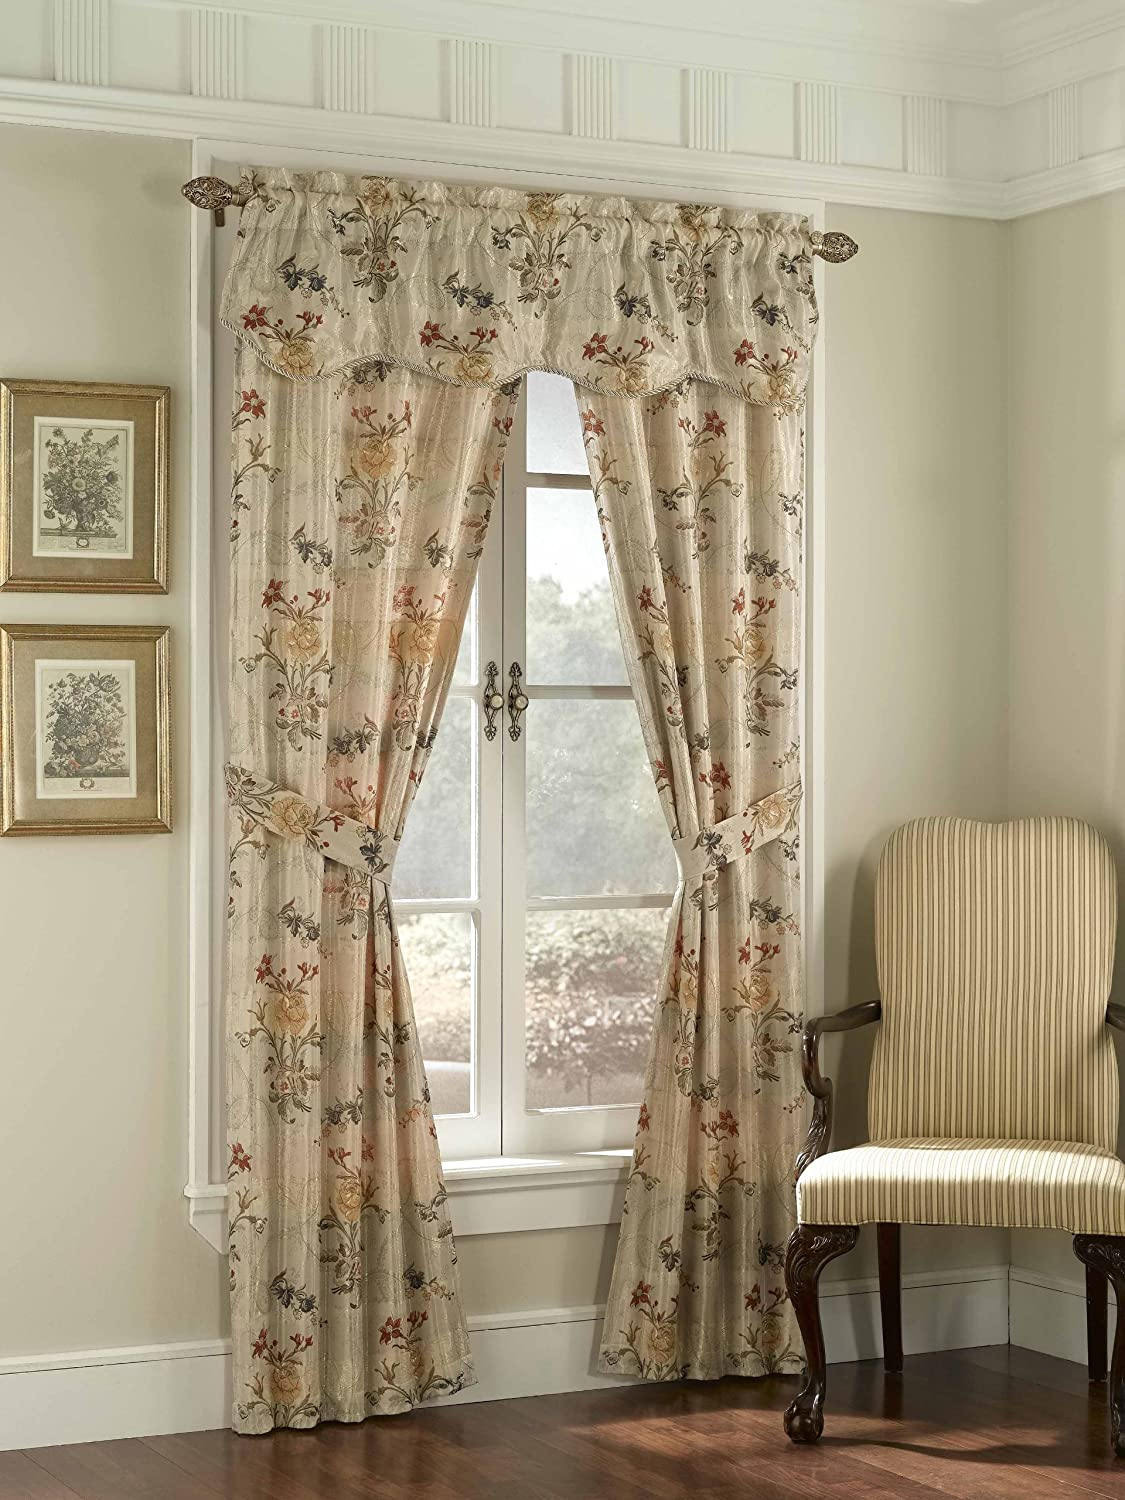 American Curtain and Home Taurus 5-Piece Window Treatment Set, 52-Inch by 84-Inch, Beige American Curtain & Home 021371032483